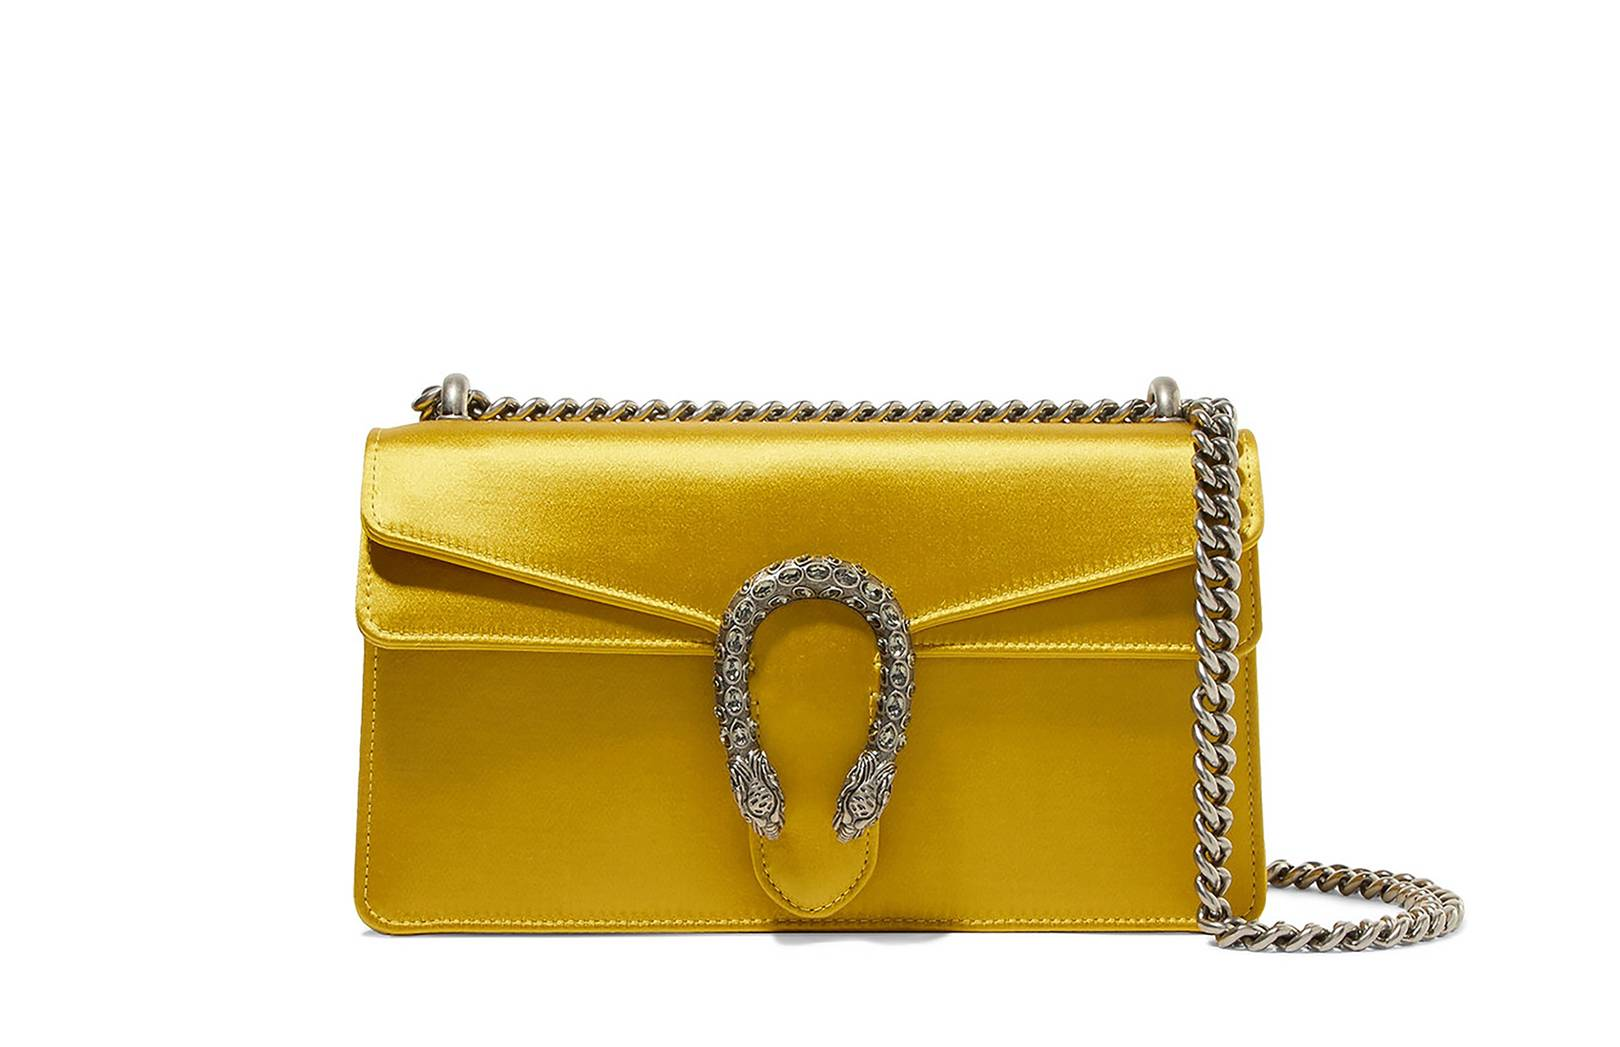 b4bf157e65c9 The 12 Best Gold Bags To Buy Now | British Vogue